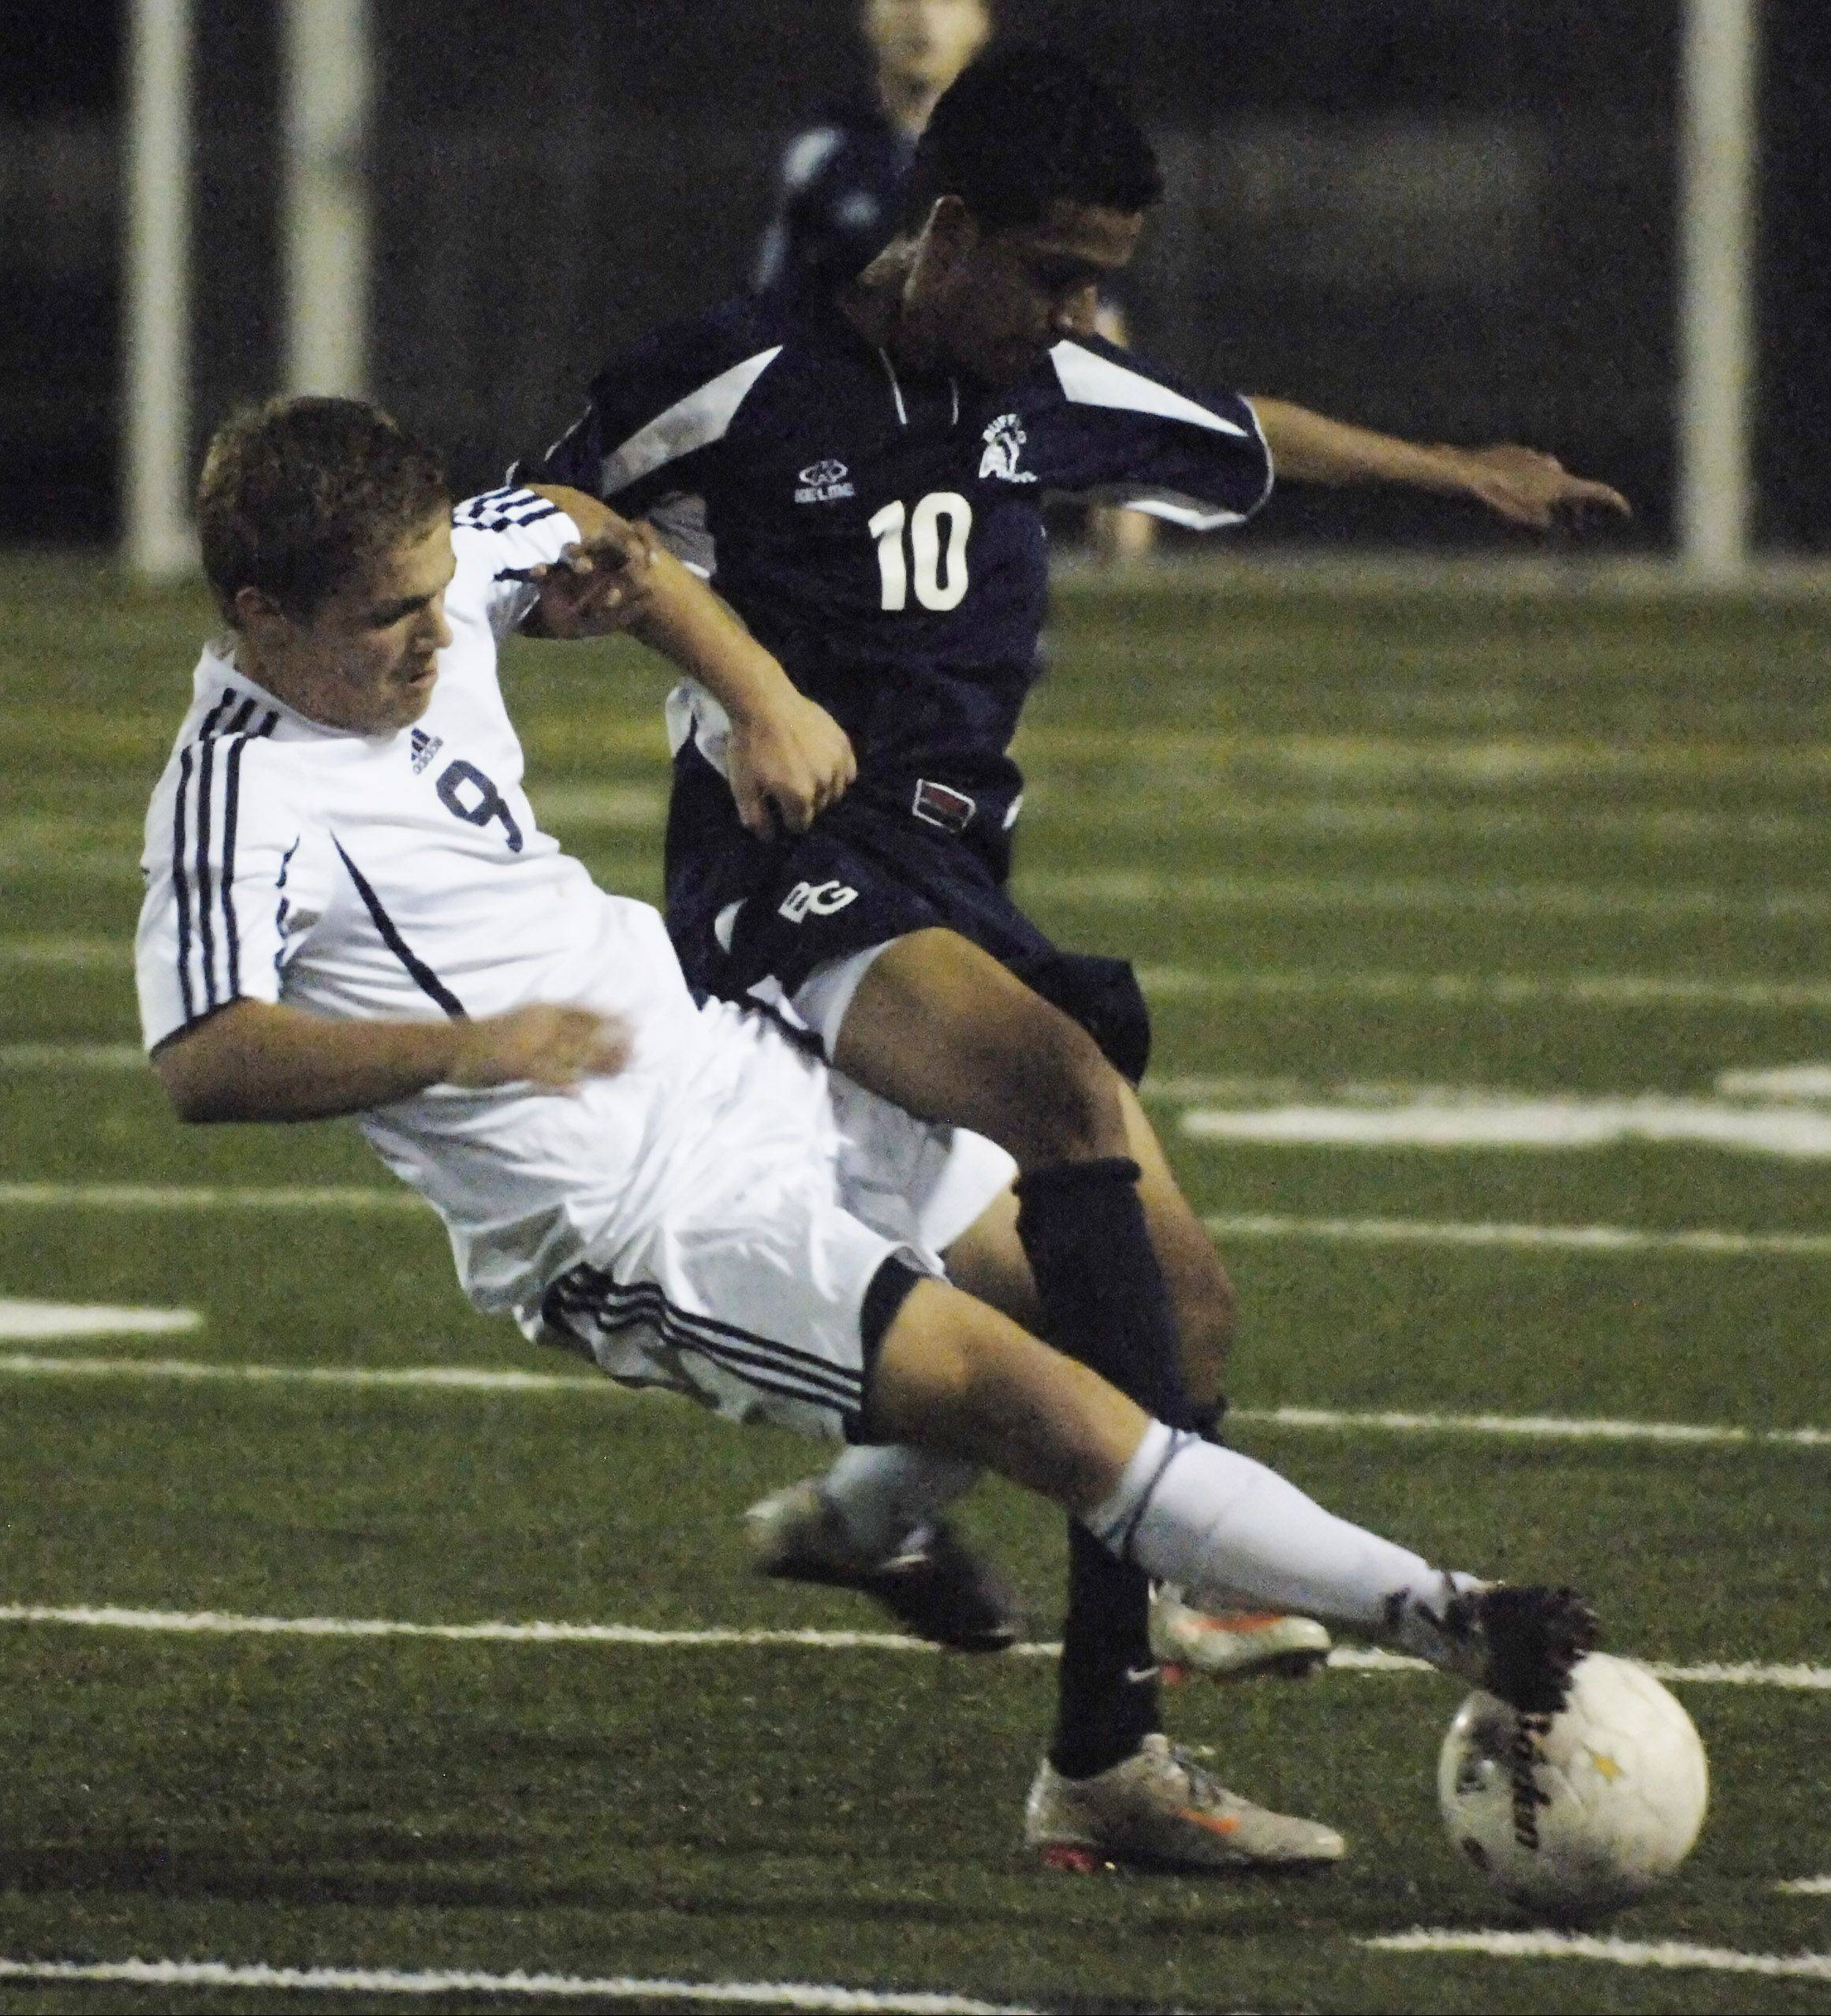 Buffalo Grove's Alberto Eloyza, right, battles with Prospect's Alex Schnepf last season in sectional semifinal action at Palatine. Eloyza, an all-MSL midfielder last season, is one of several returners who bear watching at BG.